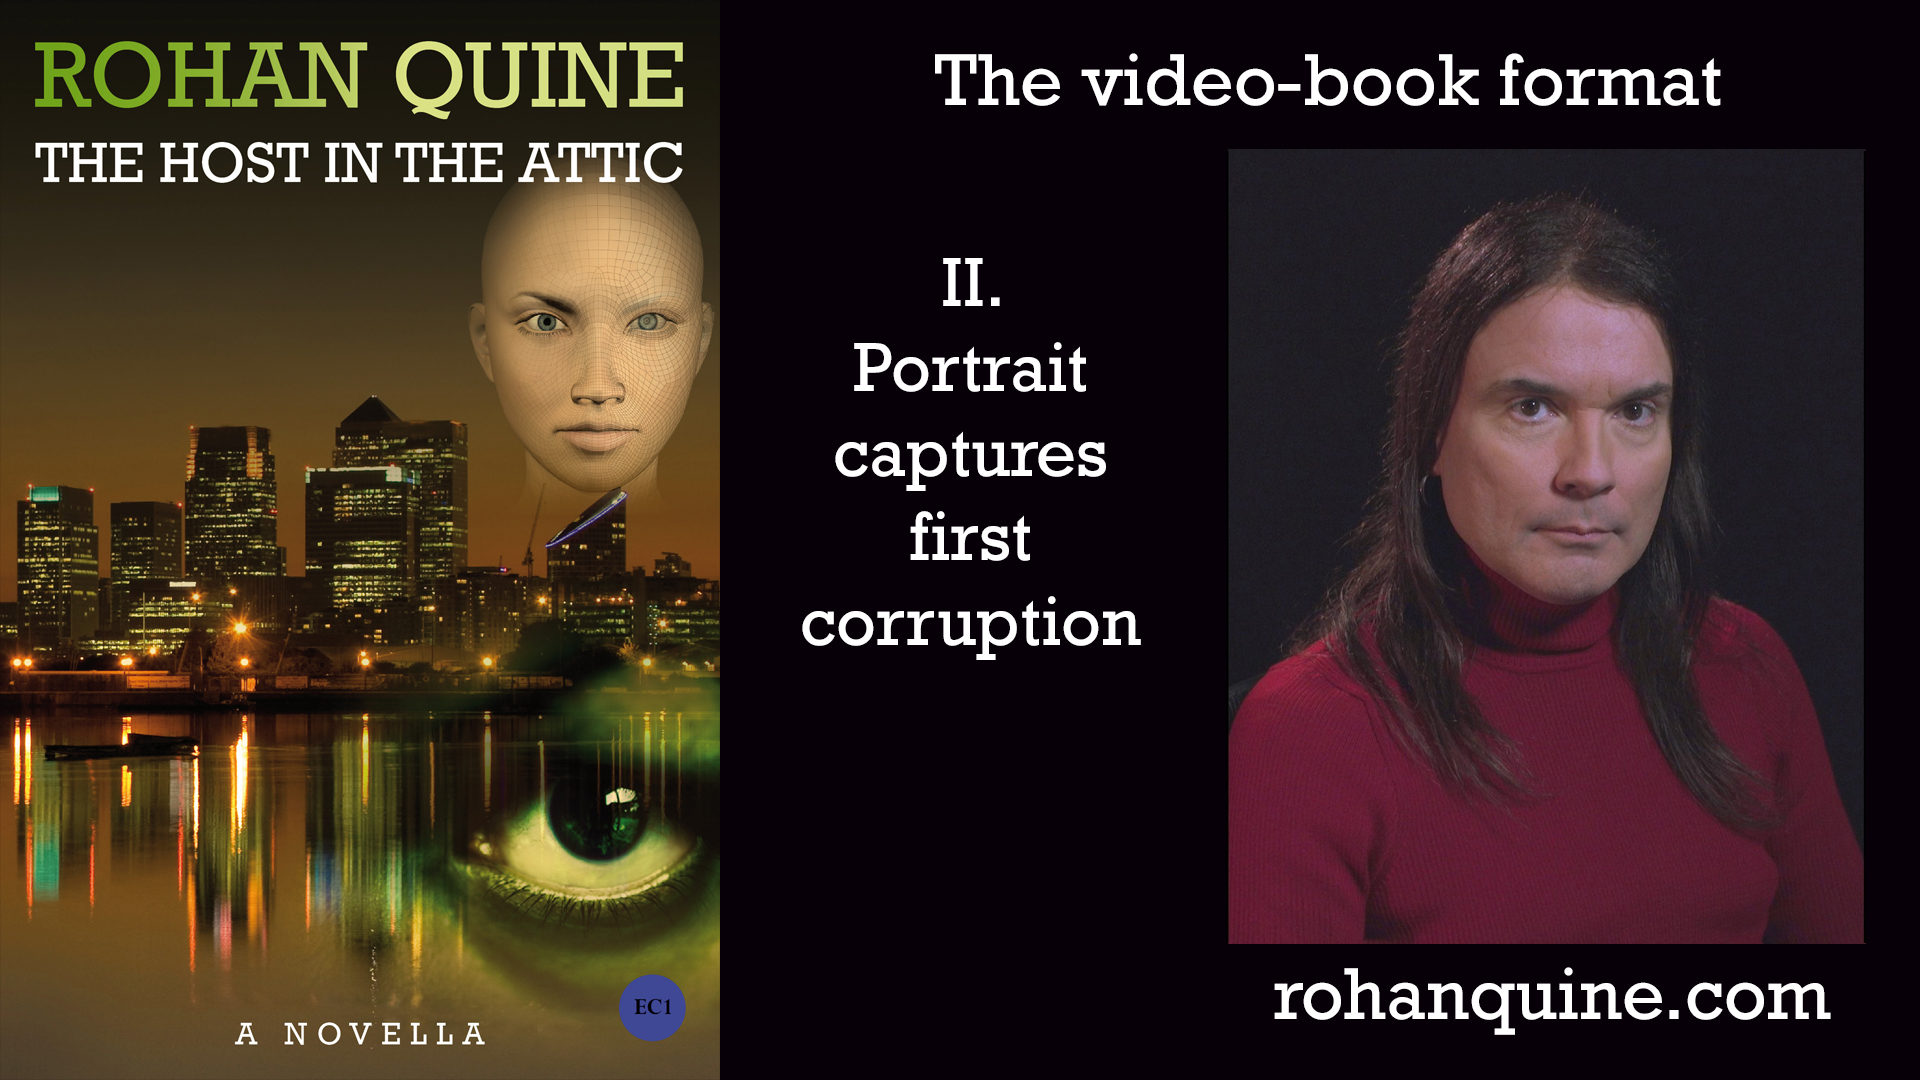 THE HOST IN THE ATTIC by Rohan Quine - video-book format - chapter II